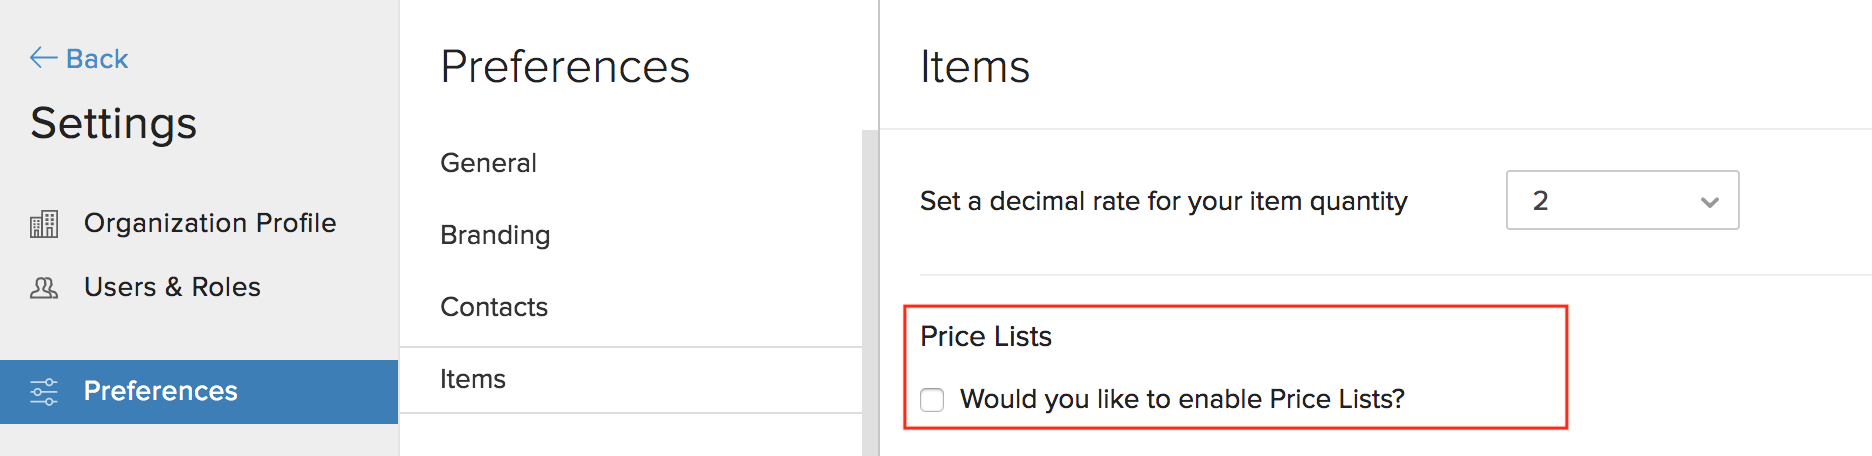 Disable Price List Image